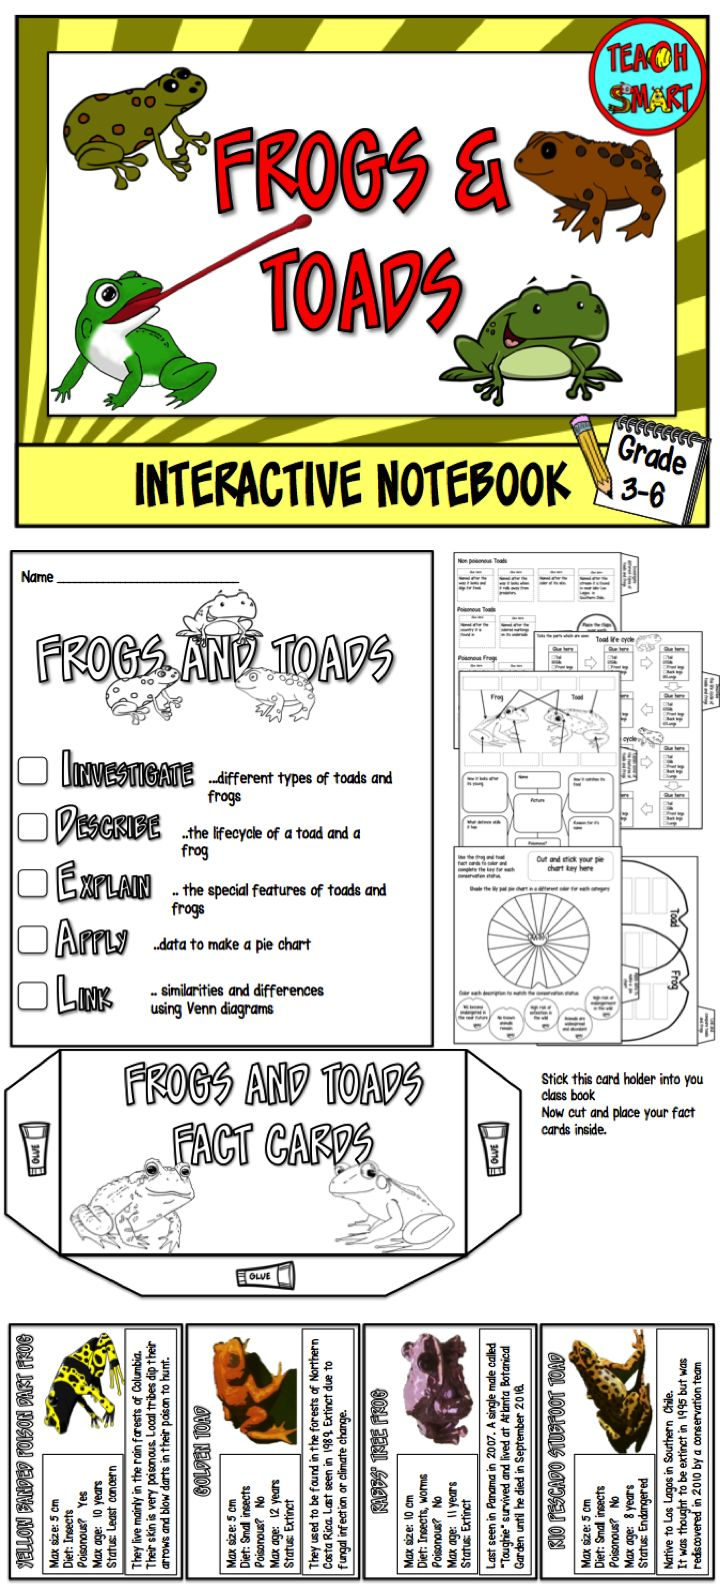 The interactive notebook uses cut and stick activities to help your class learn about different types of frogs and toads including their life cycle. Includes 20 different frog and toad fact cards   Investigate different types of toads and frogs Describe the lifecycle of a toad and a frog Explain the special features of toads and frogs Apply data to make a pie chart Link similarities and differences using Venn diagrams